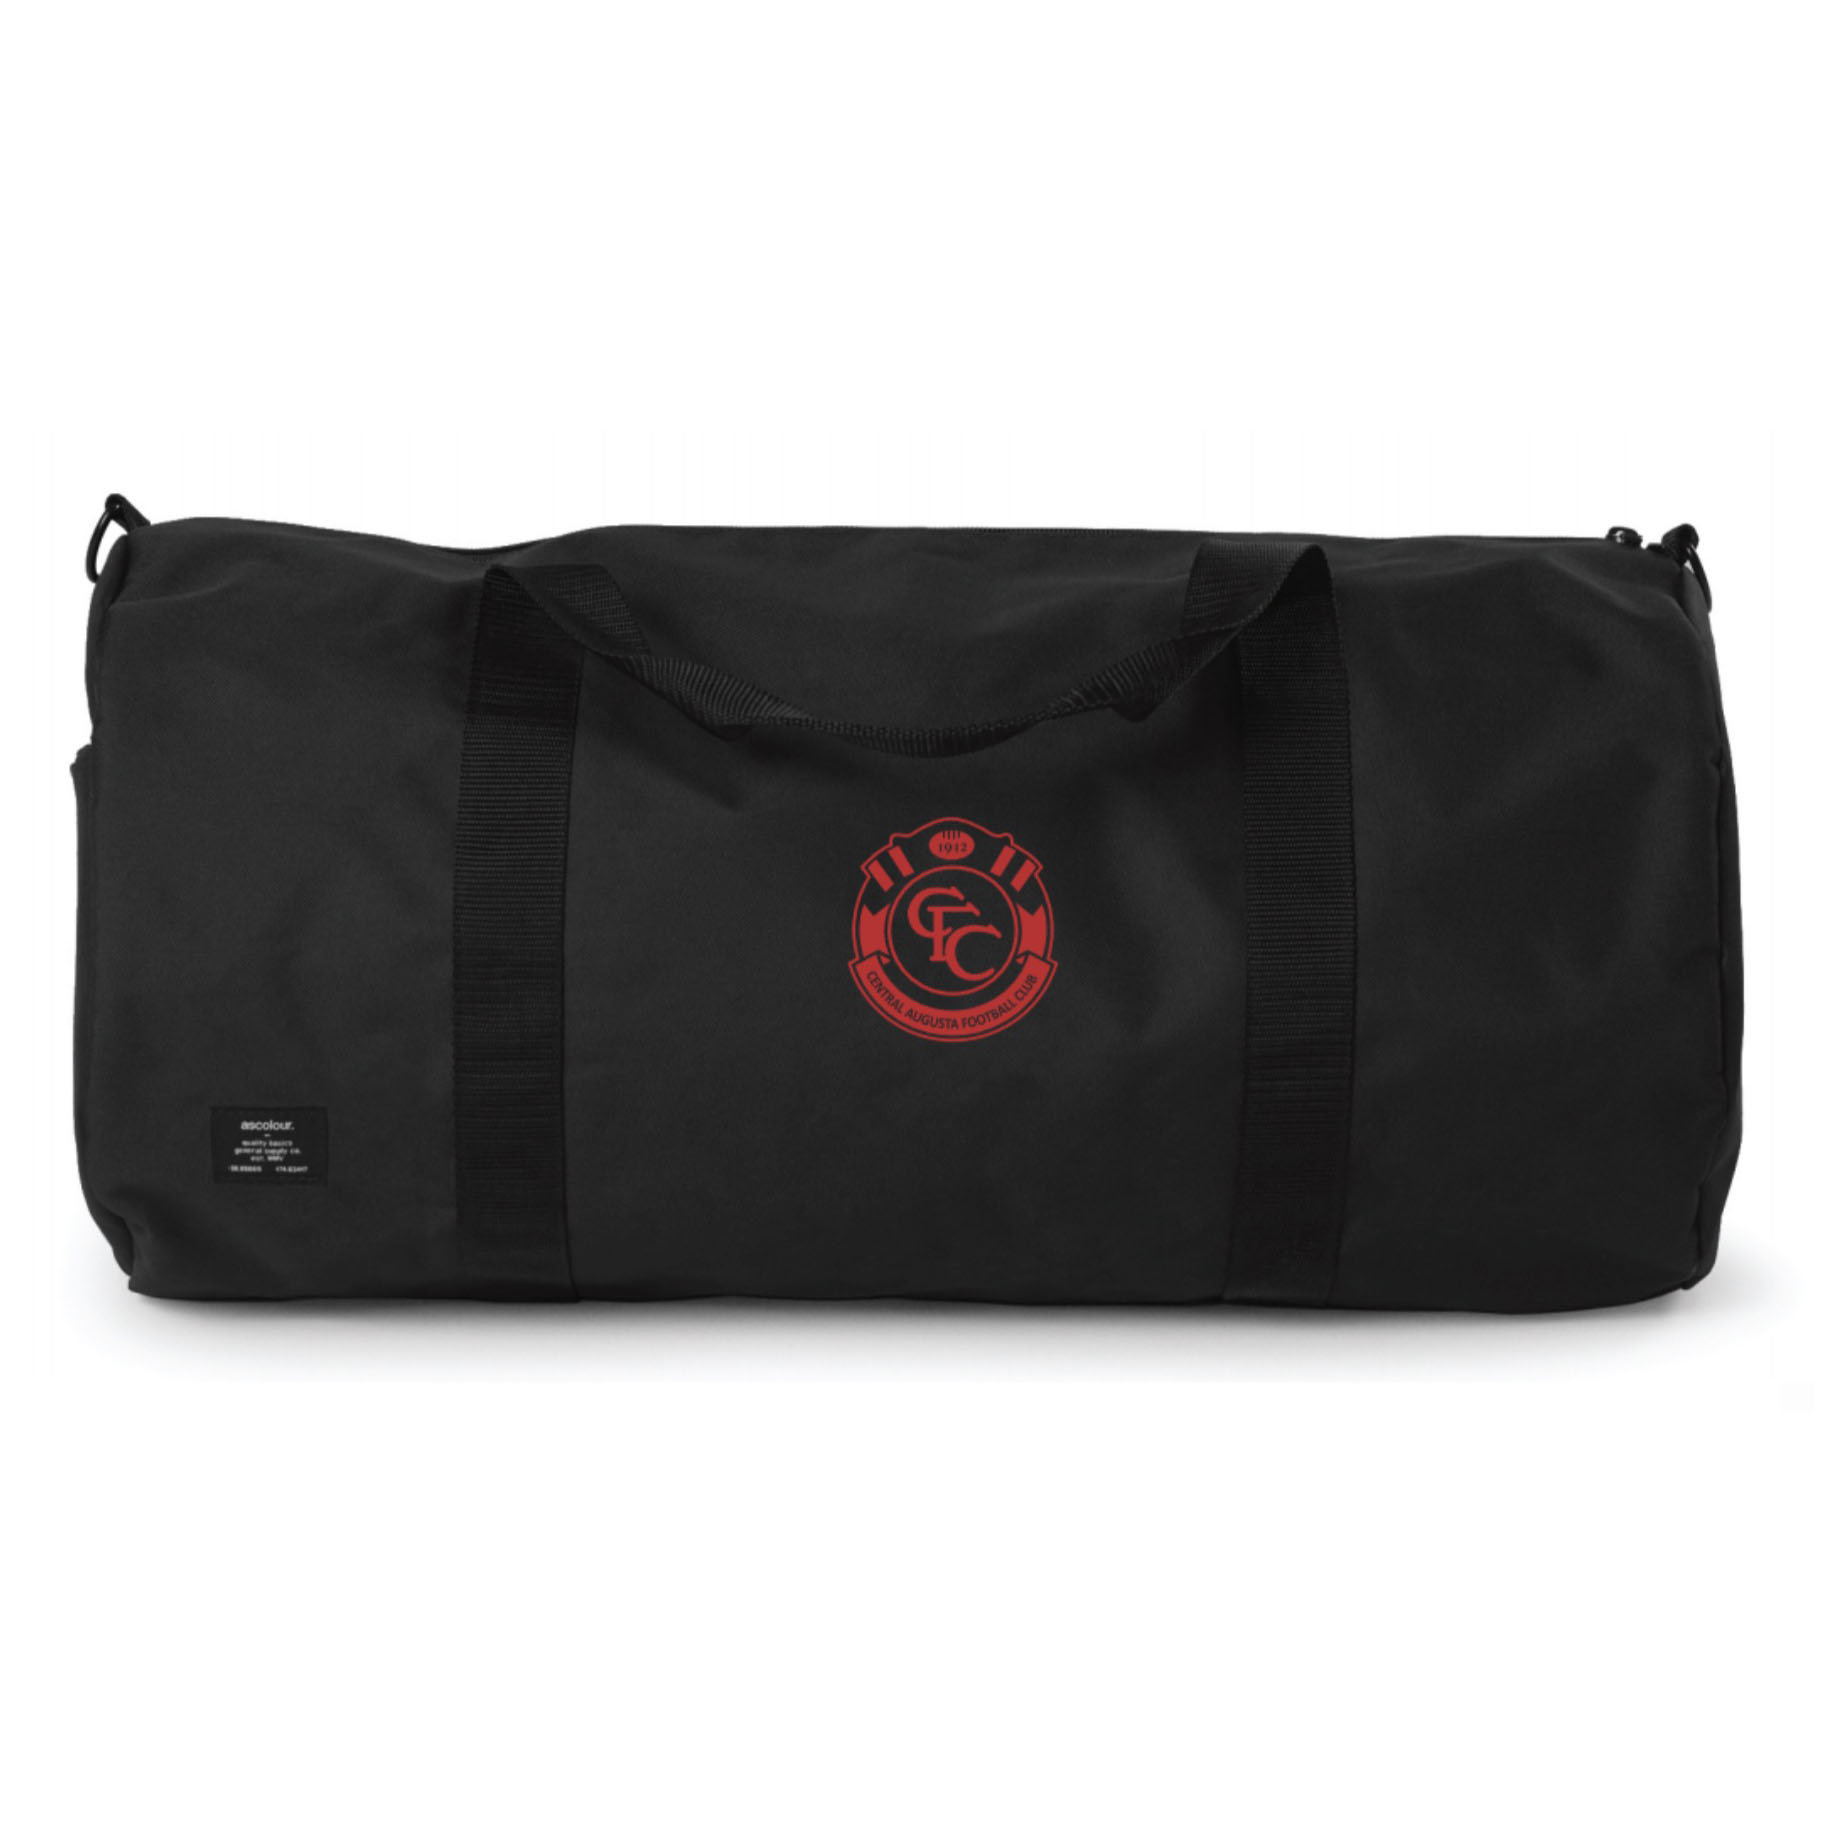 CAFC Area Duffle Bag